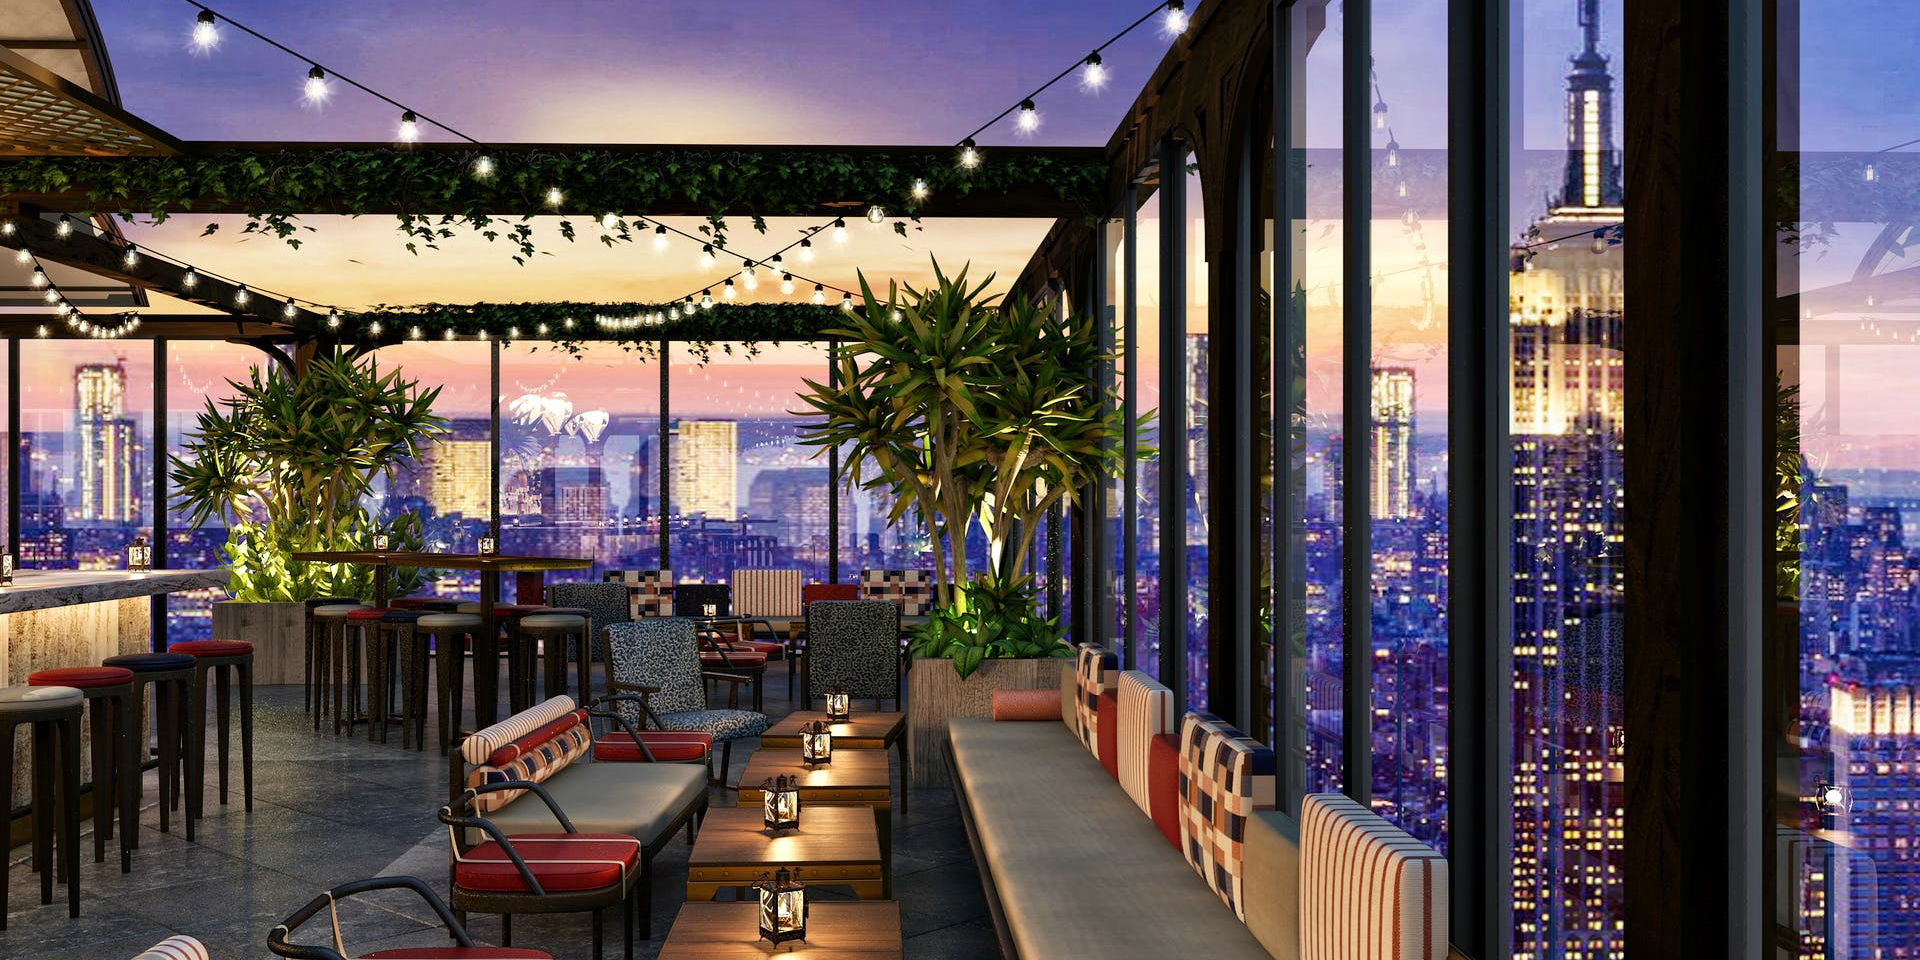 Moxy Hotels expands its footprint in New York City